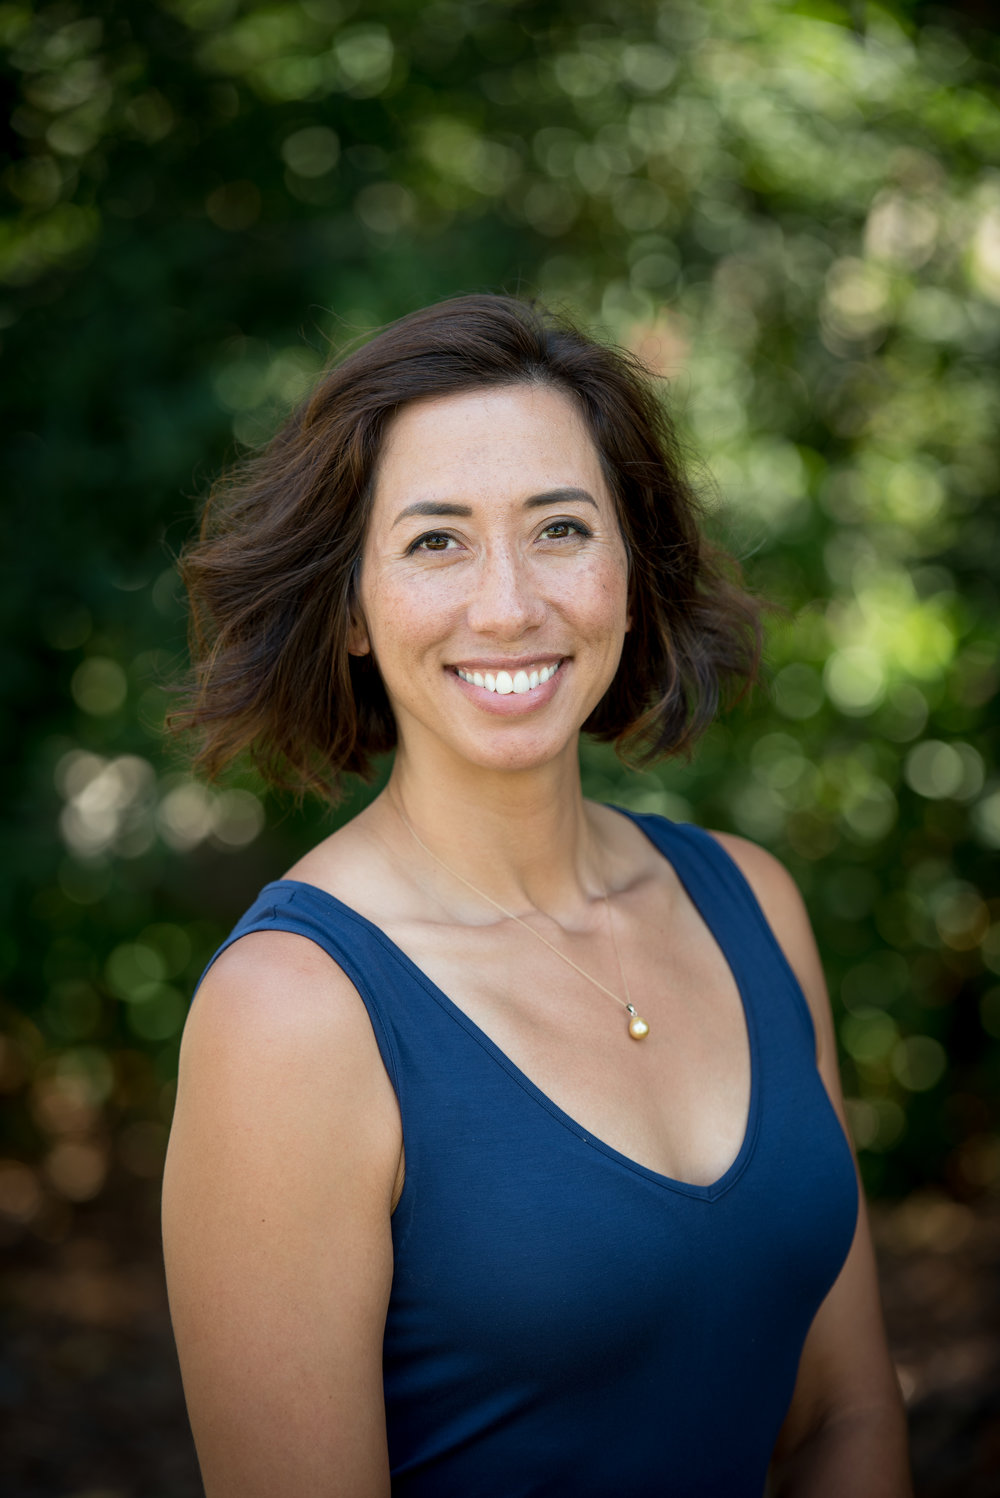 Chief Operating Officer Cassandra has been with the Miller Center since 2010, when she first learned about social entrepreneurship through Santa Clara University's MBA program. Through her work with Miller Center, she has had the honor of working with over 100 social entrepreneurs directly through GSBI programs.